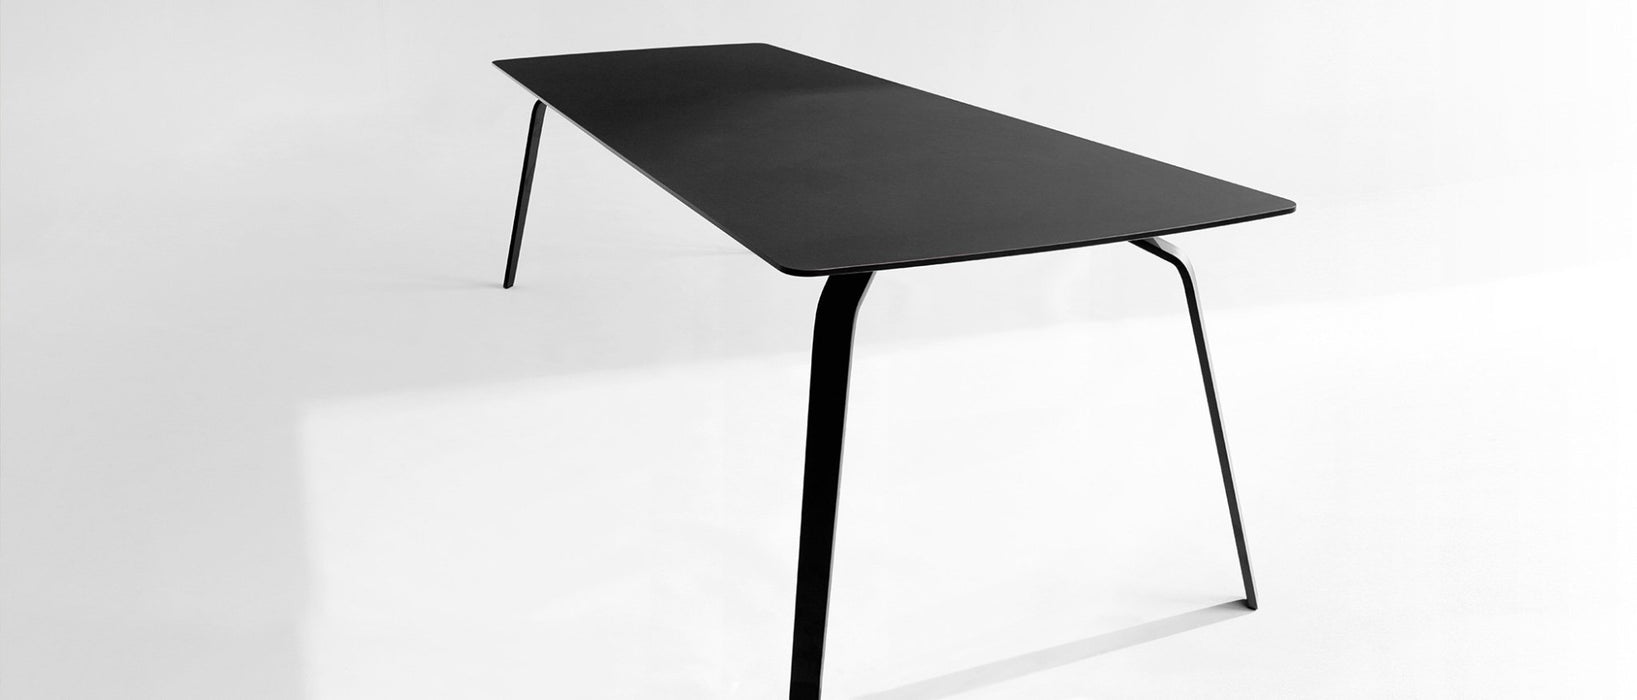 FLOAT Indoor Dining Table 208cm // Black Linoleum Top, Black Metal Legs